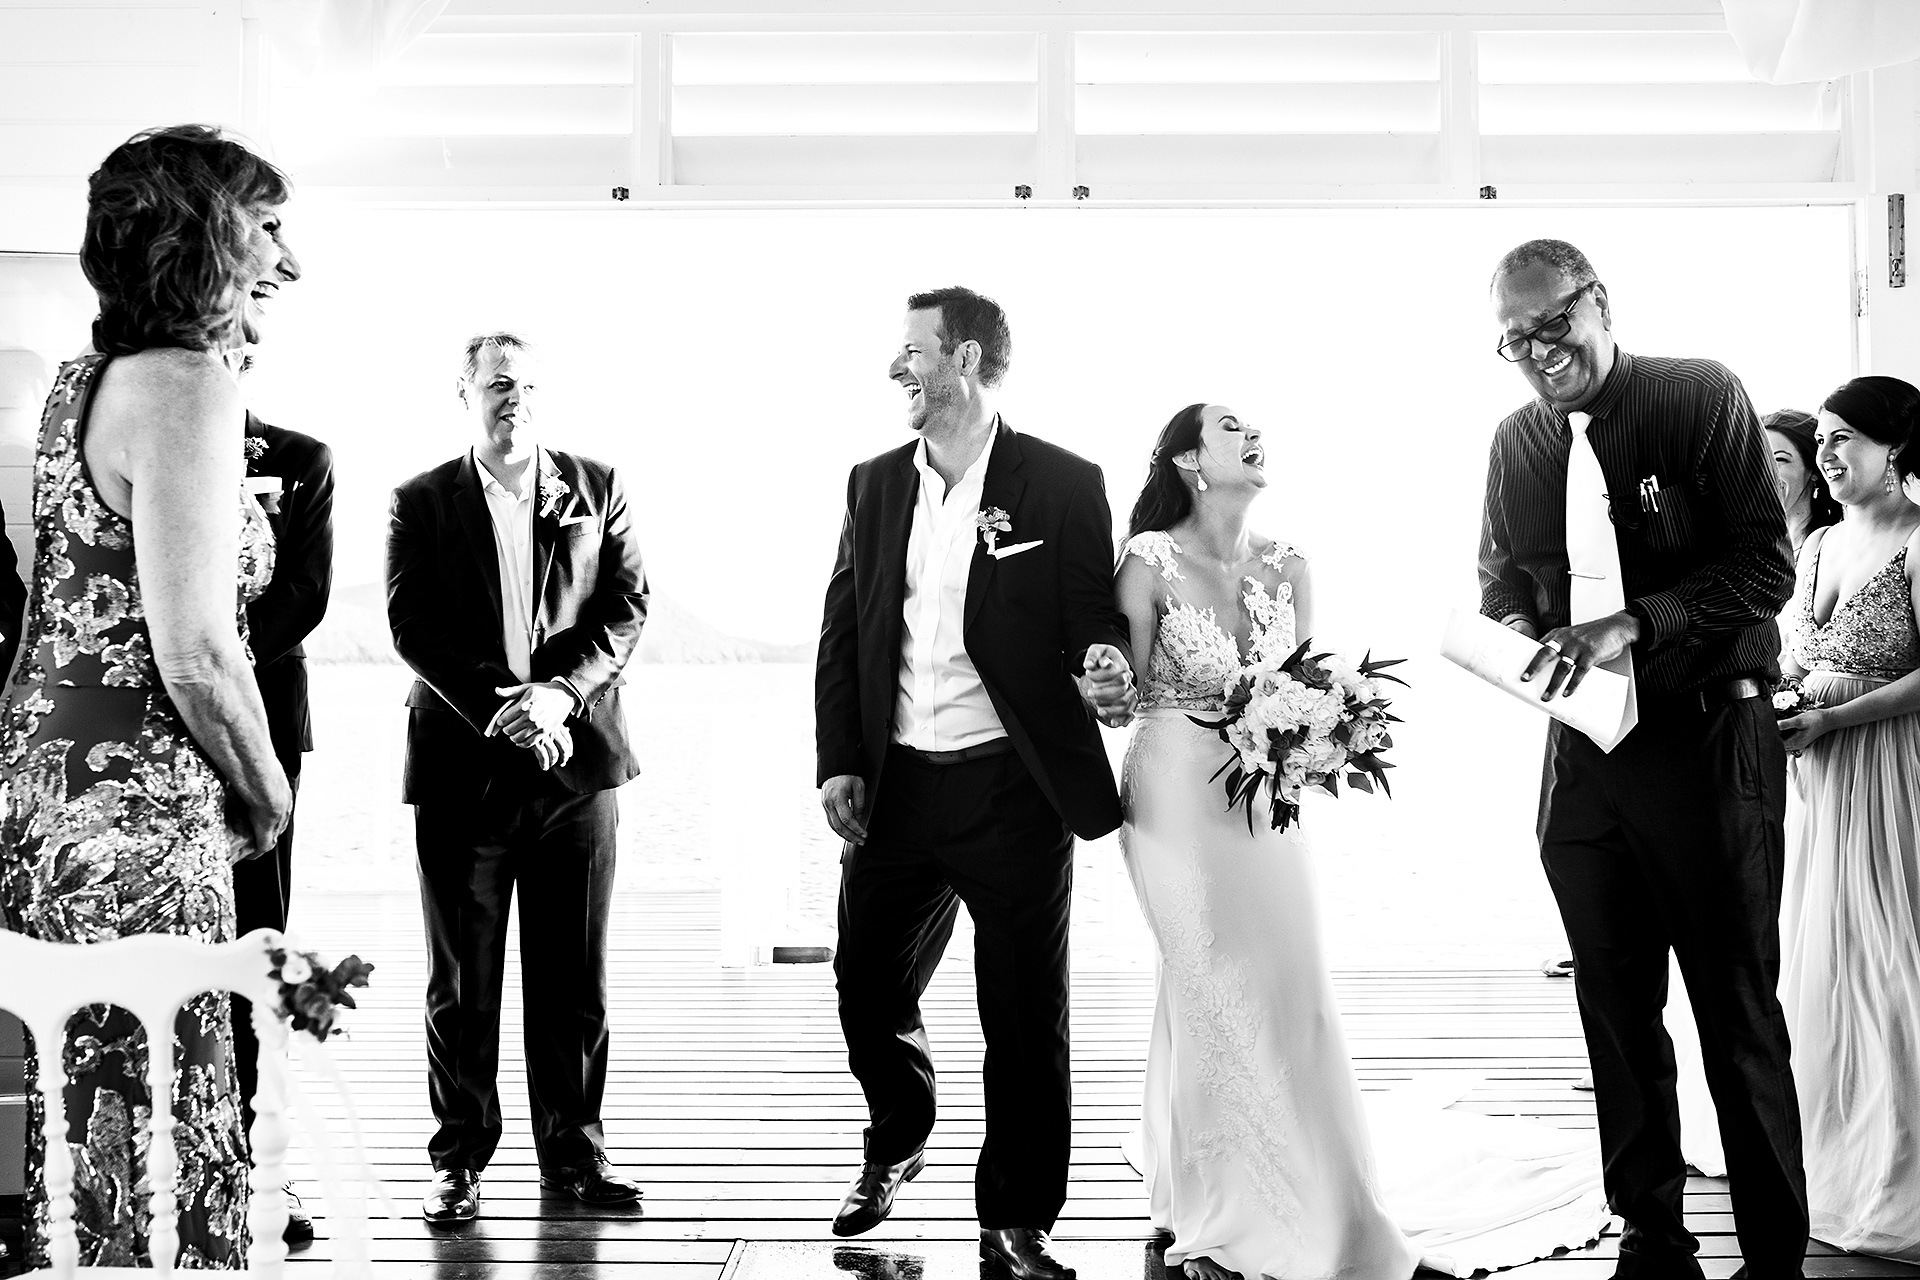 Black and White Ceremony Photo at St. Lucia | officiant butchers the groom's name